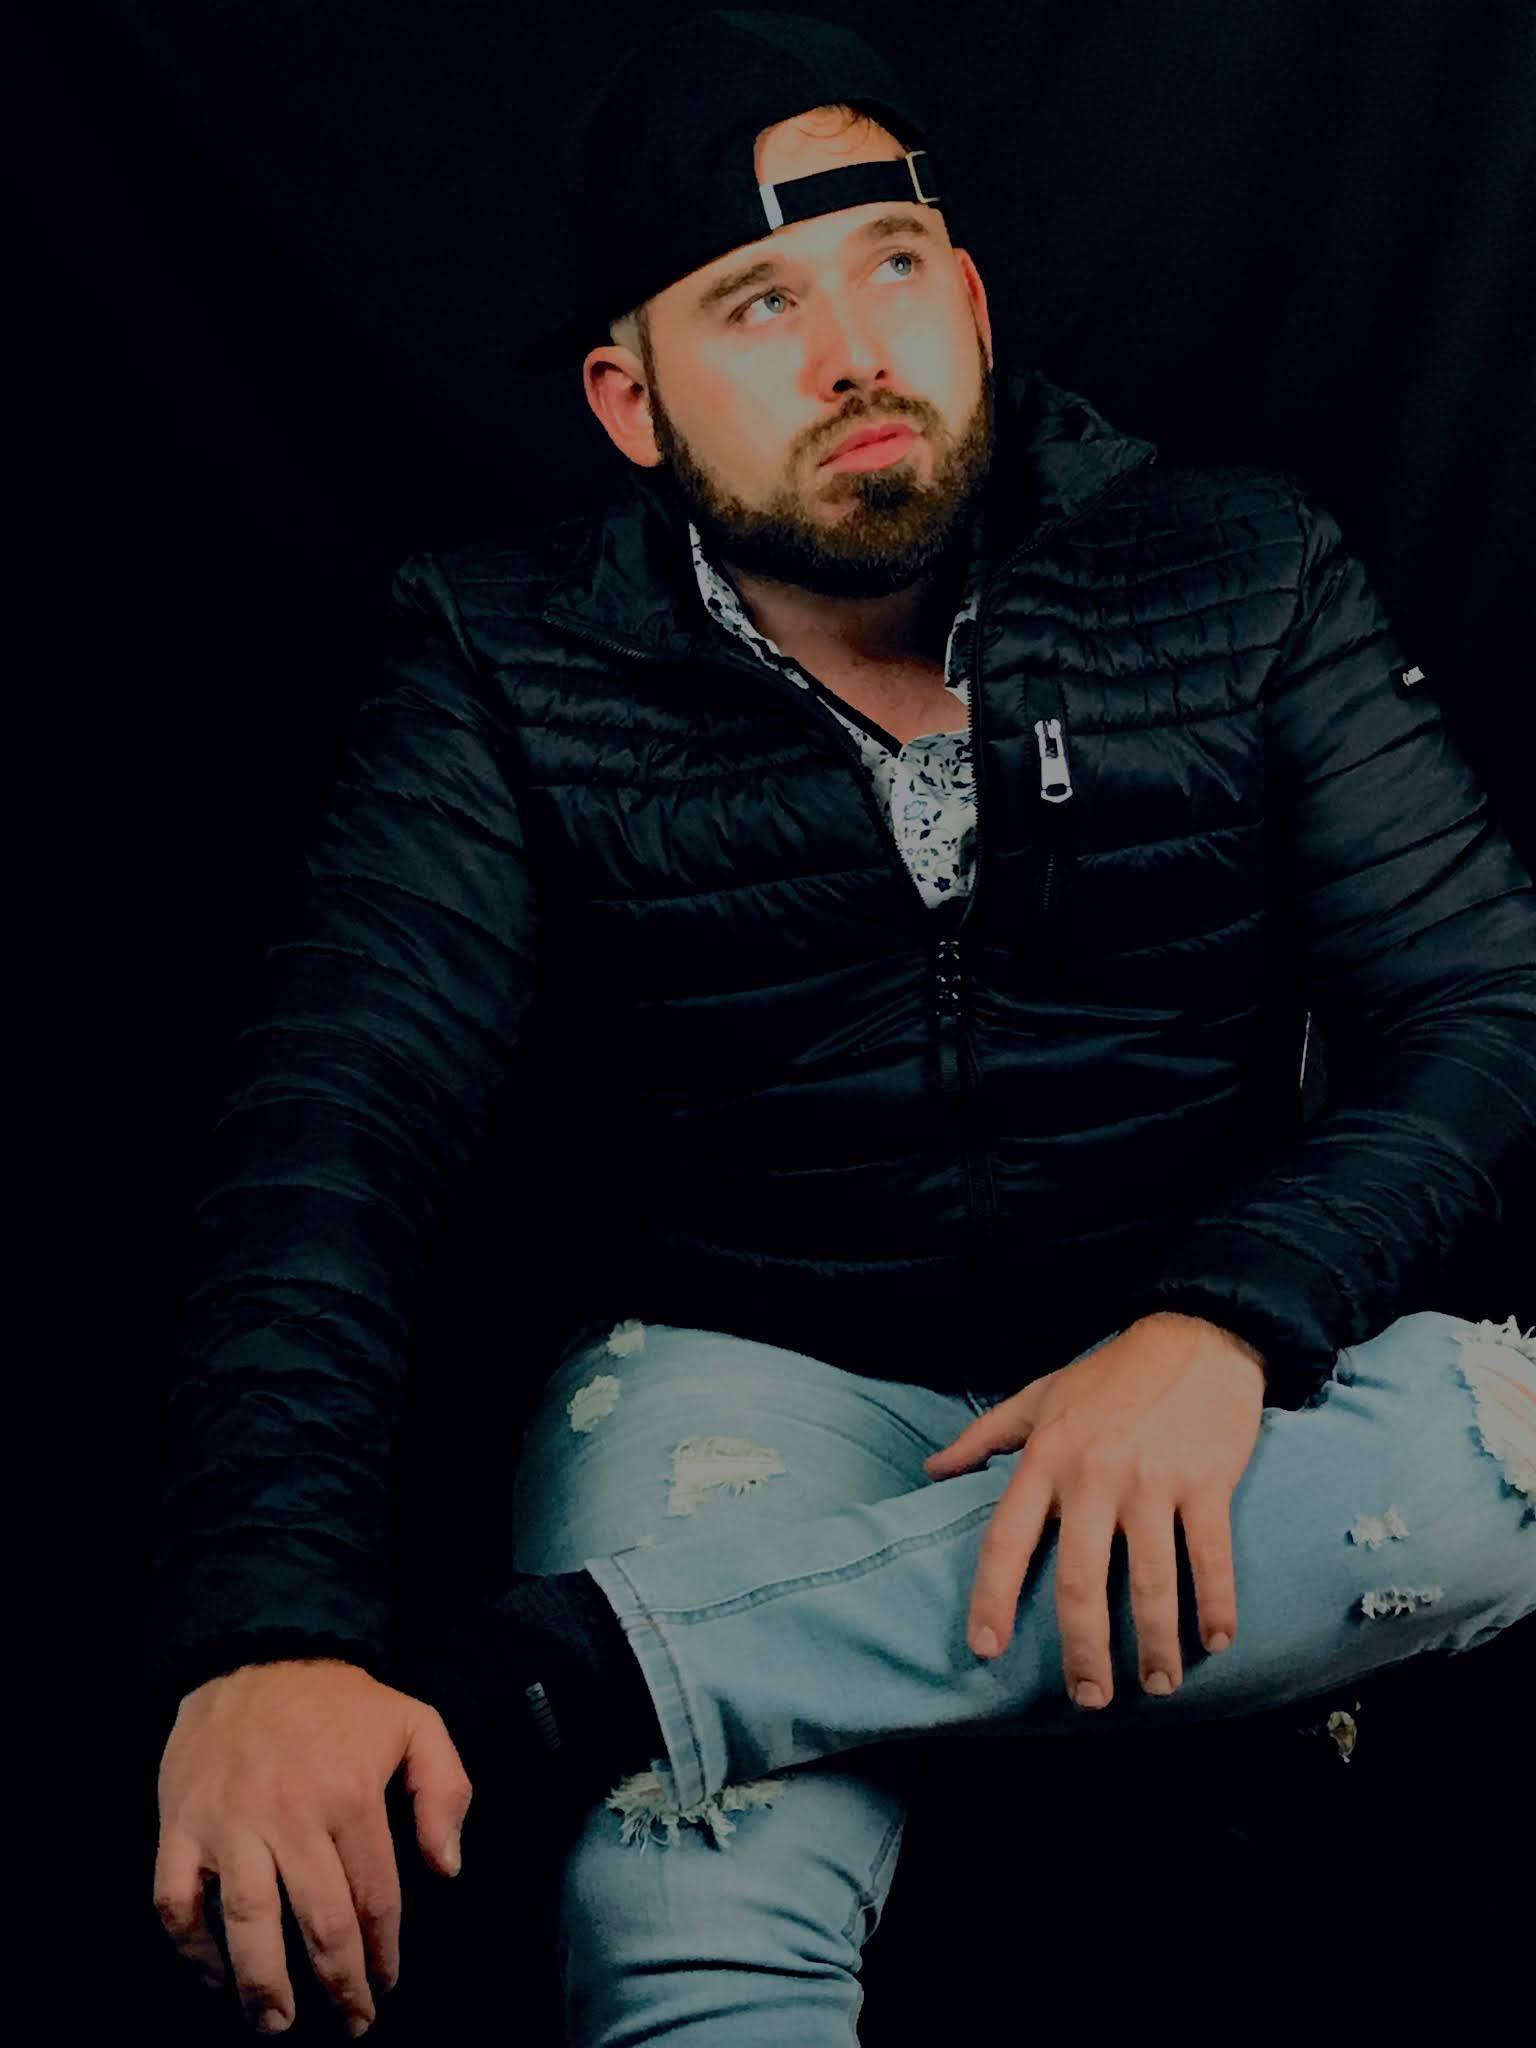 Music Audition. Discover Hip Hop music, stream free and download songs & albums, watch music videos and explore Texas's independent/emerging music scene with Michael Brading